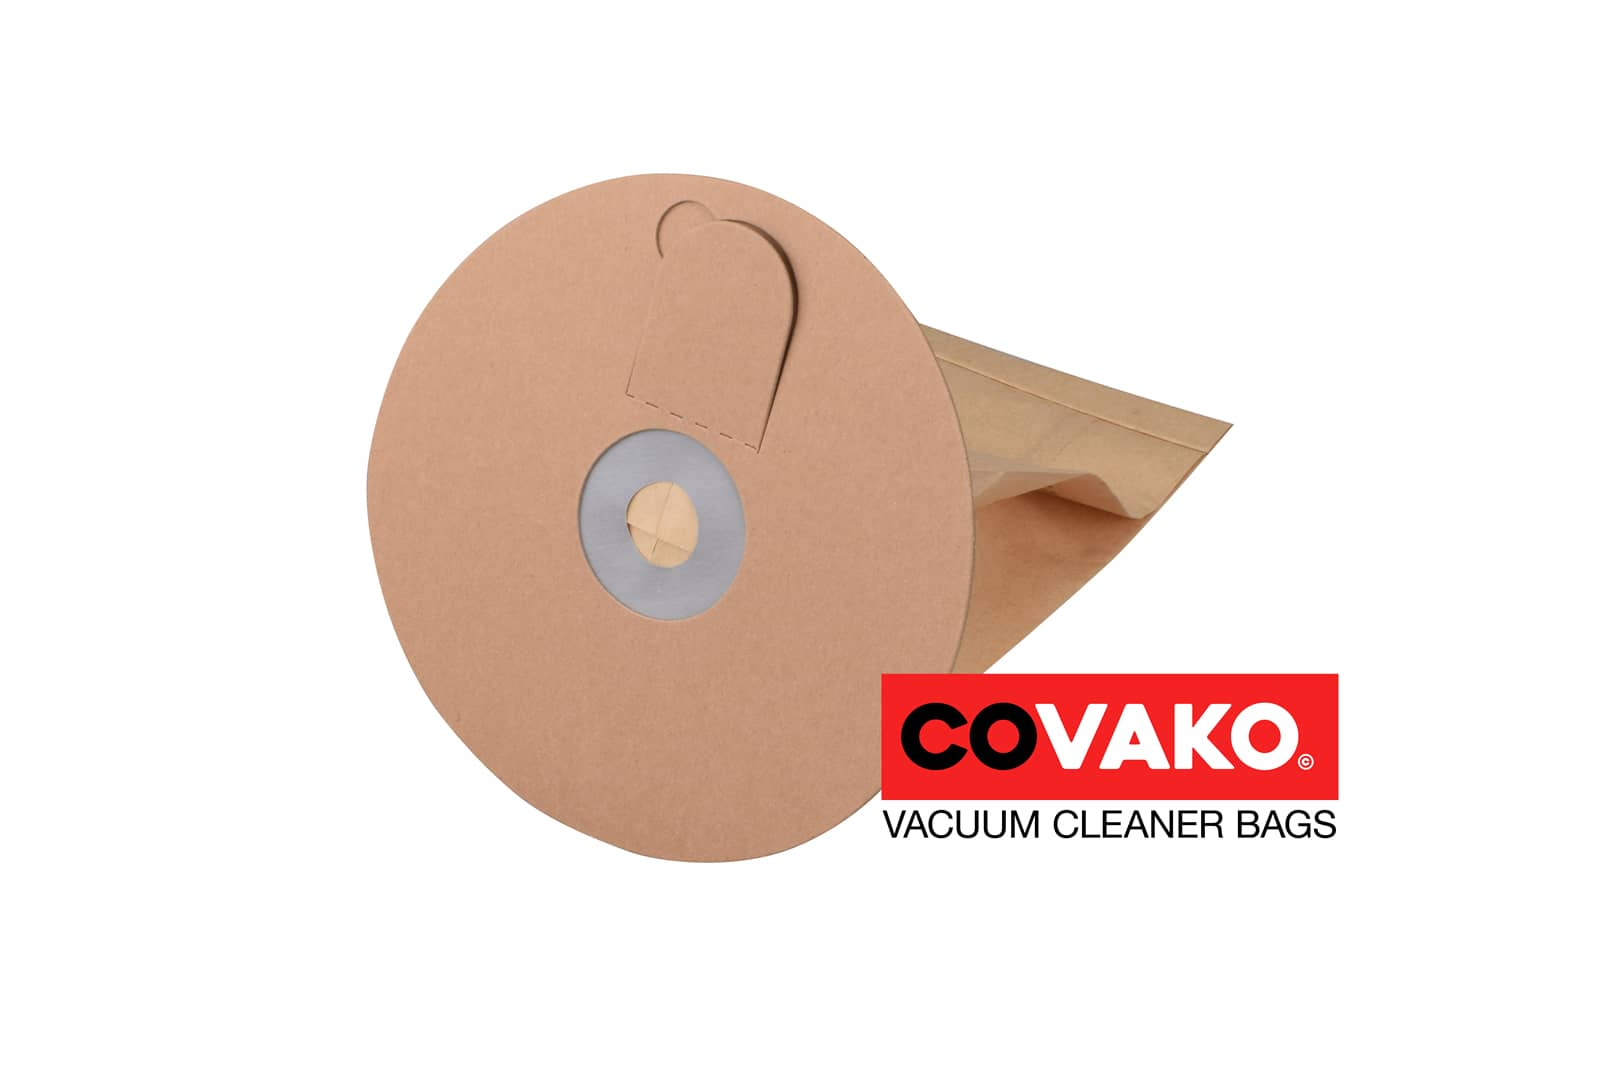 Ivac Ruck Zuck / Paper - Ivac vacuum cleaner bags